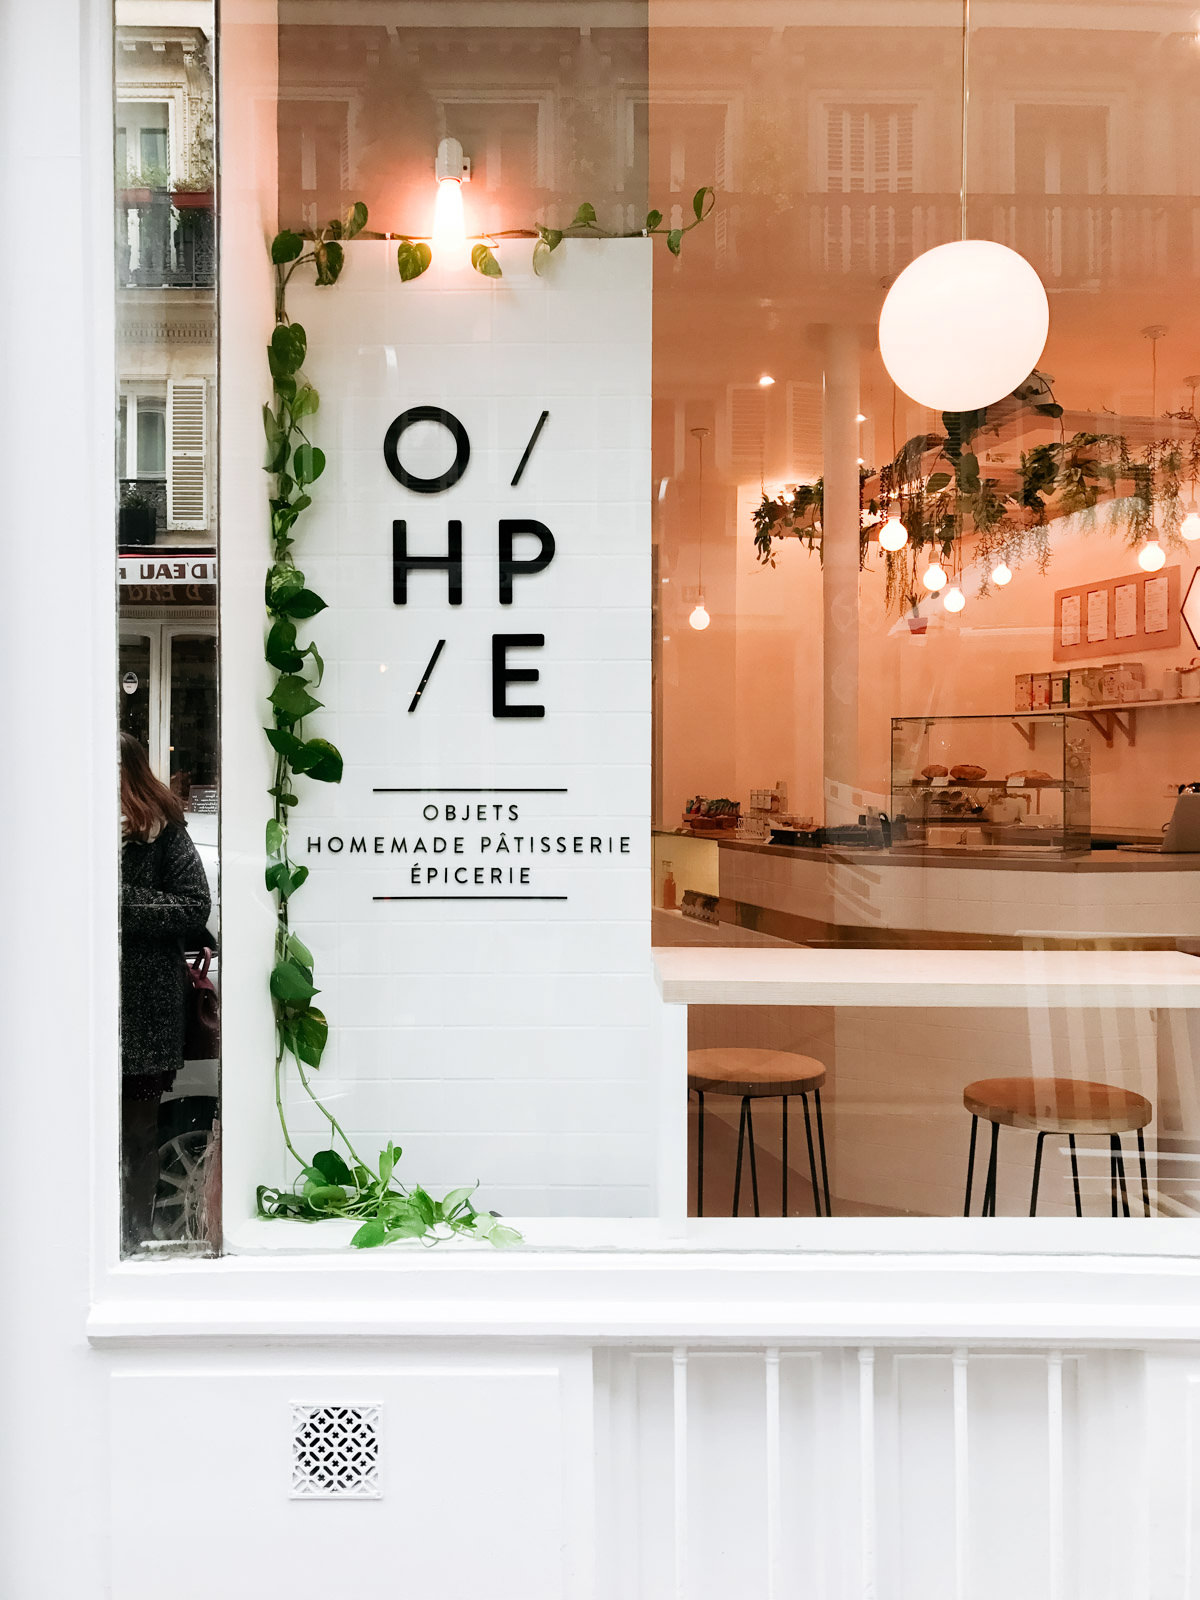 Blog-mode-and-The-City-Lifestyle-Cinq-Petites-Choses-206-ohpe-cafe-paris